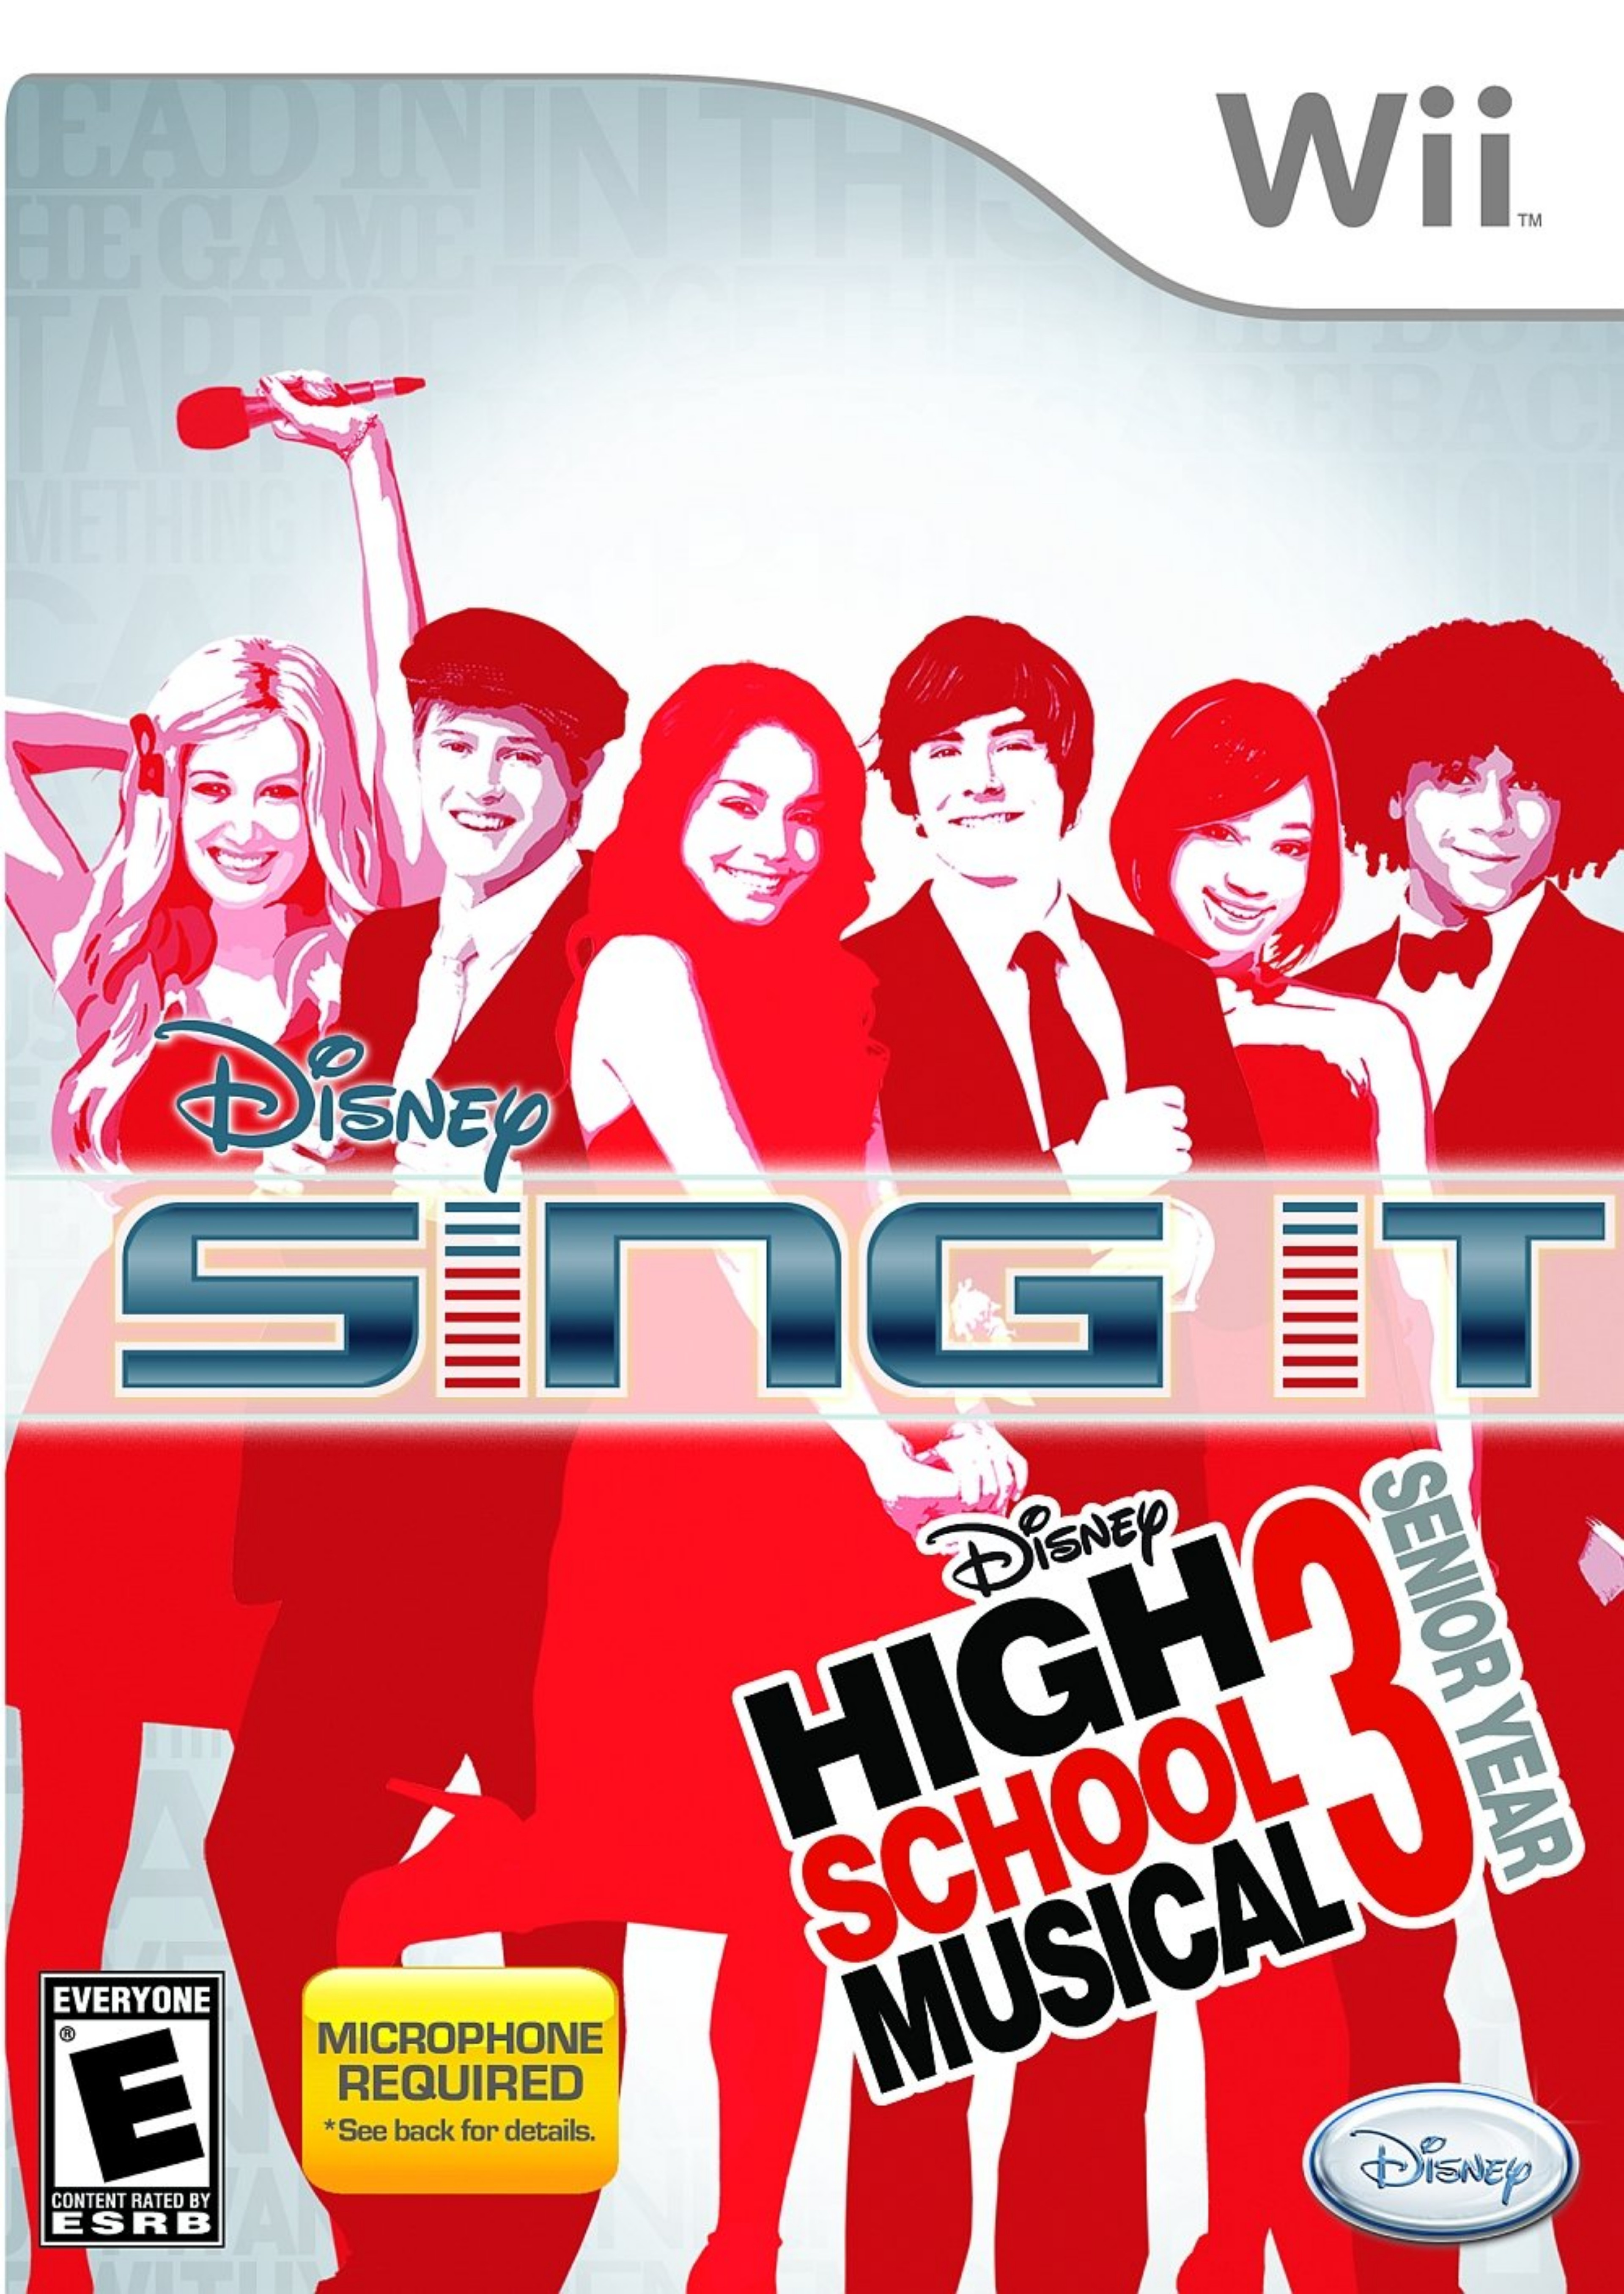 high school musical 3 song bet on it